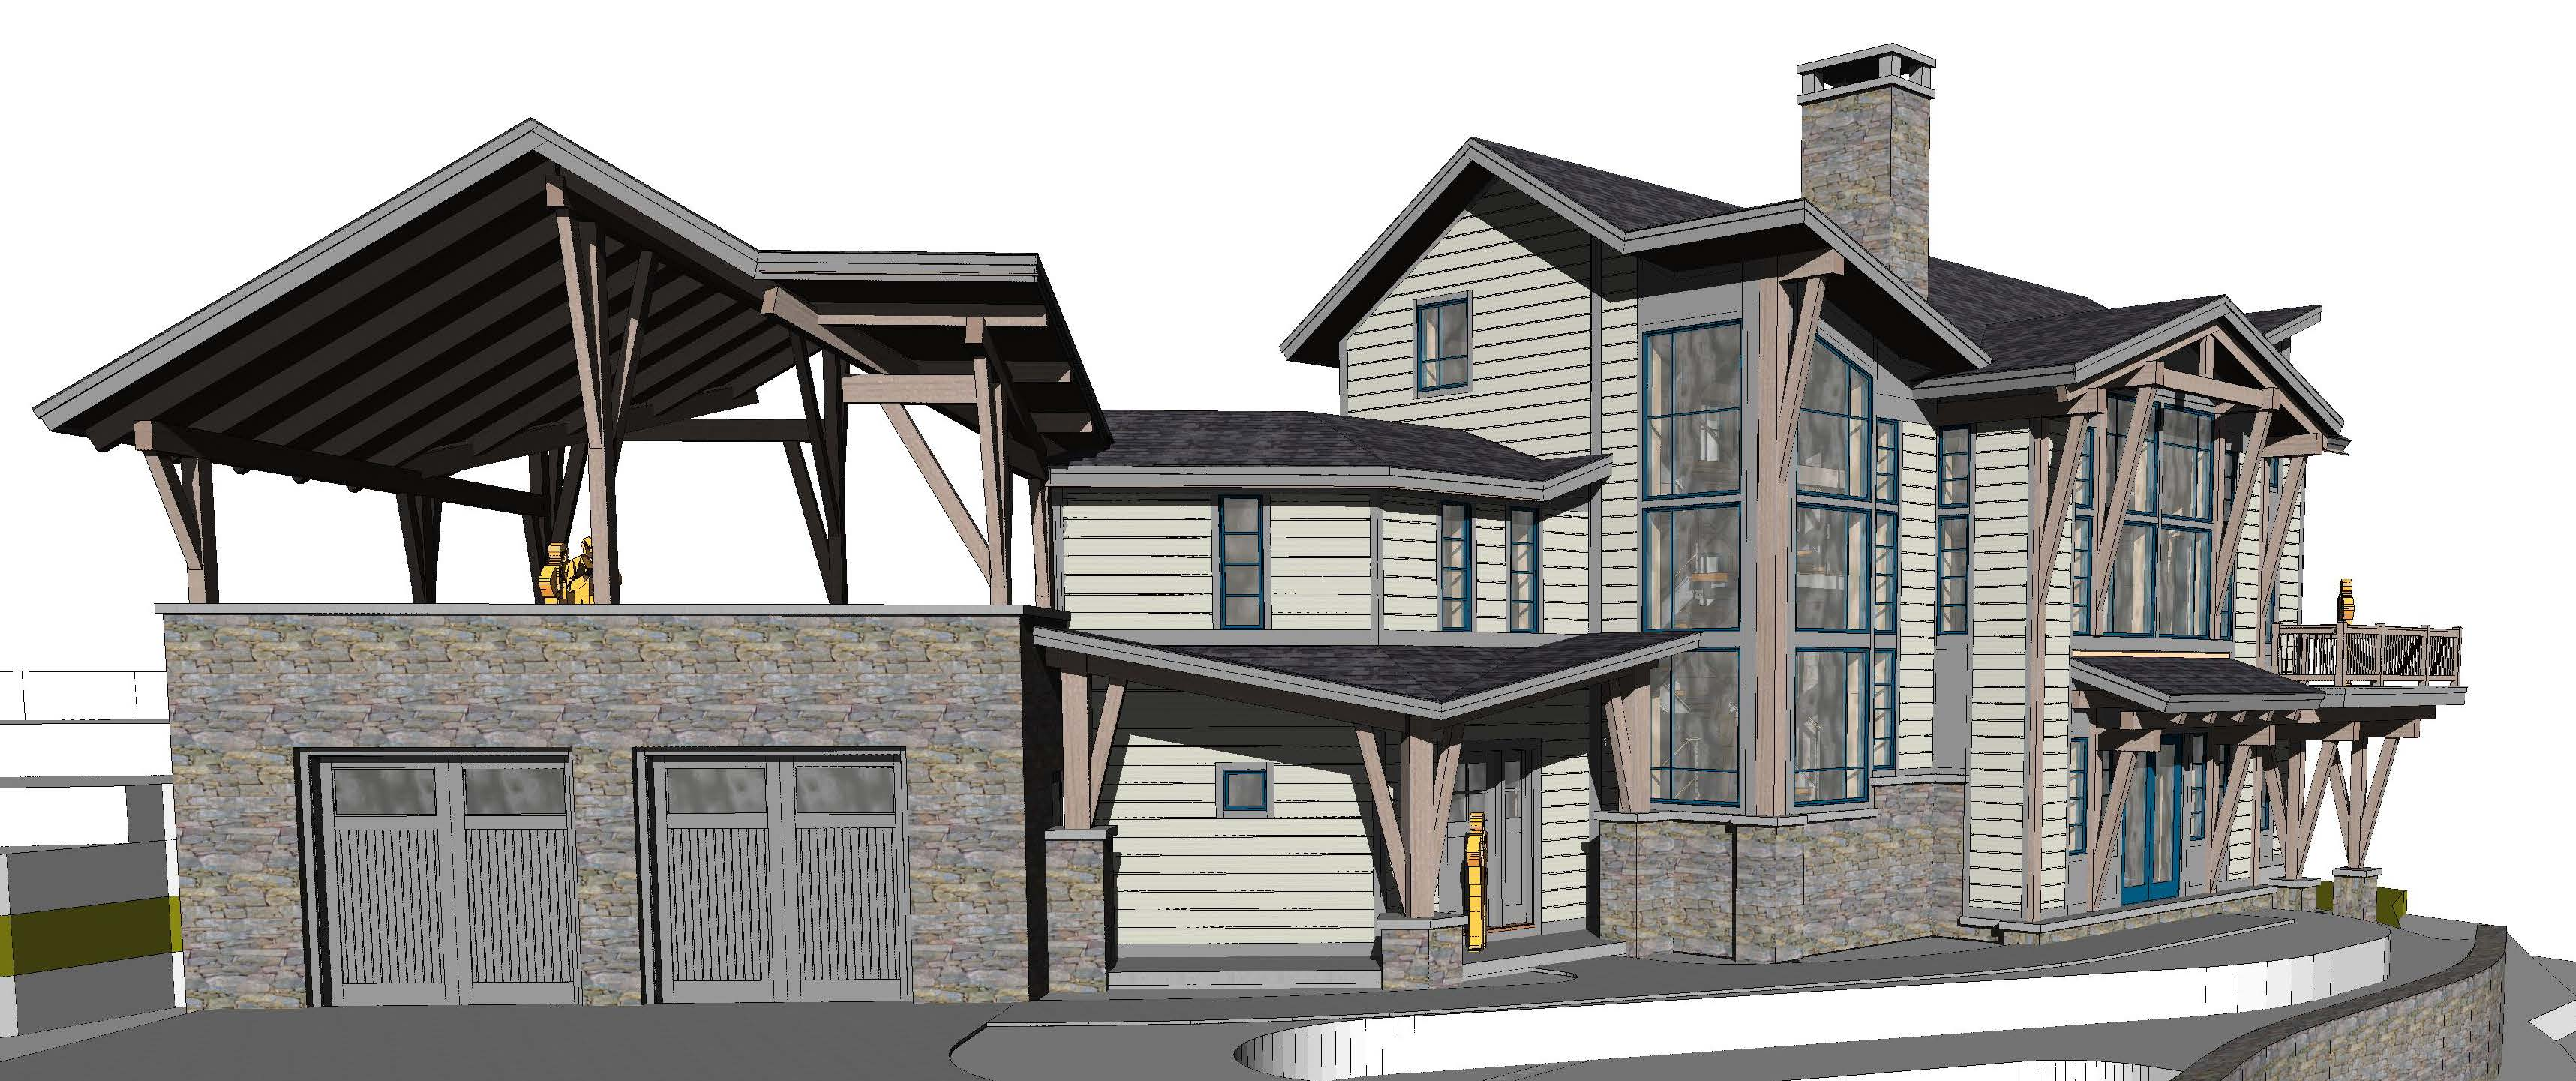 Ski lodge style house plans escortsea for Lodge style floor plans